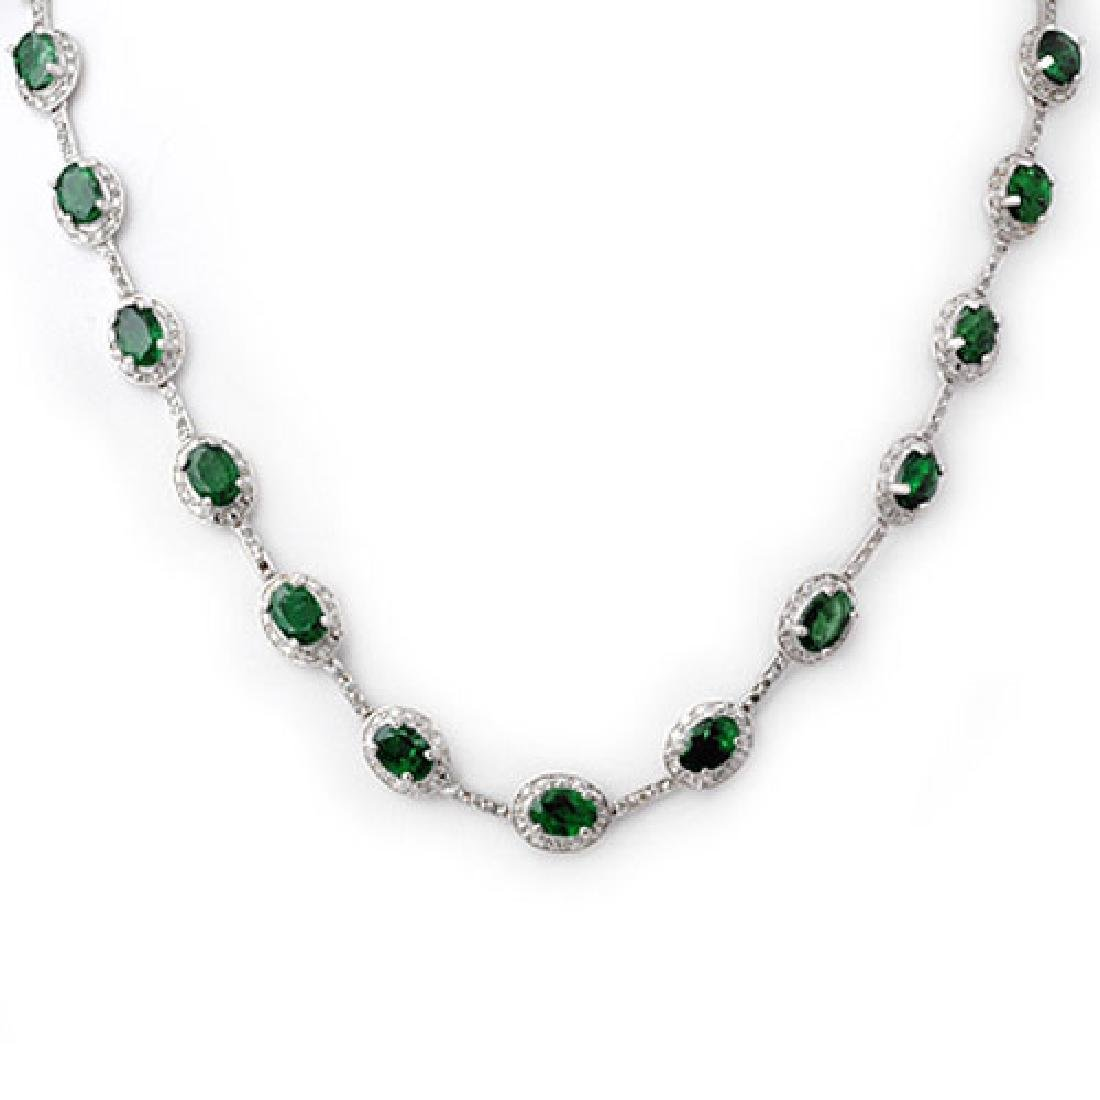 21.0 CTW Emerald & Diamond Necklace 10K White Gold